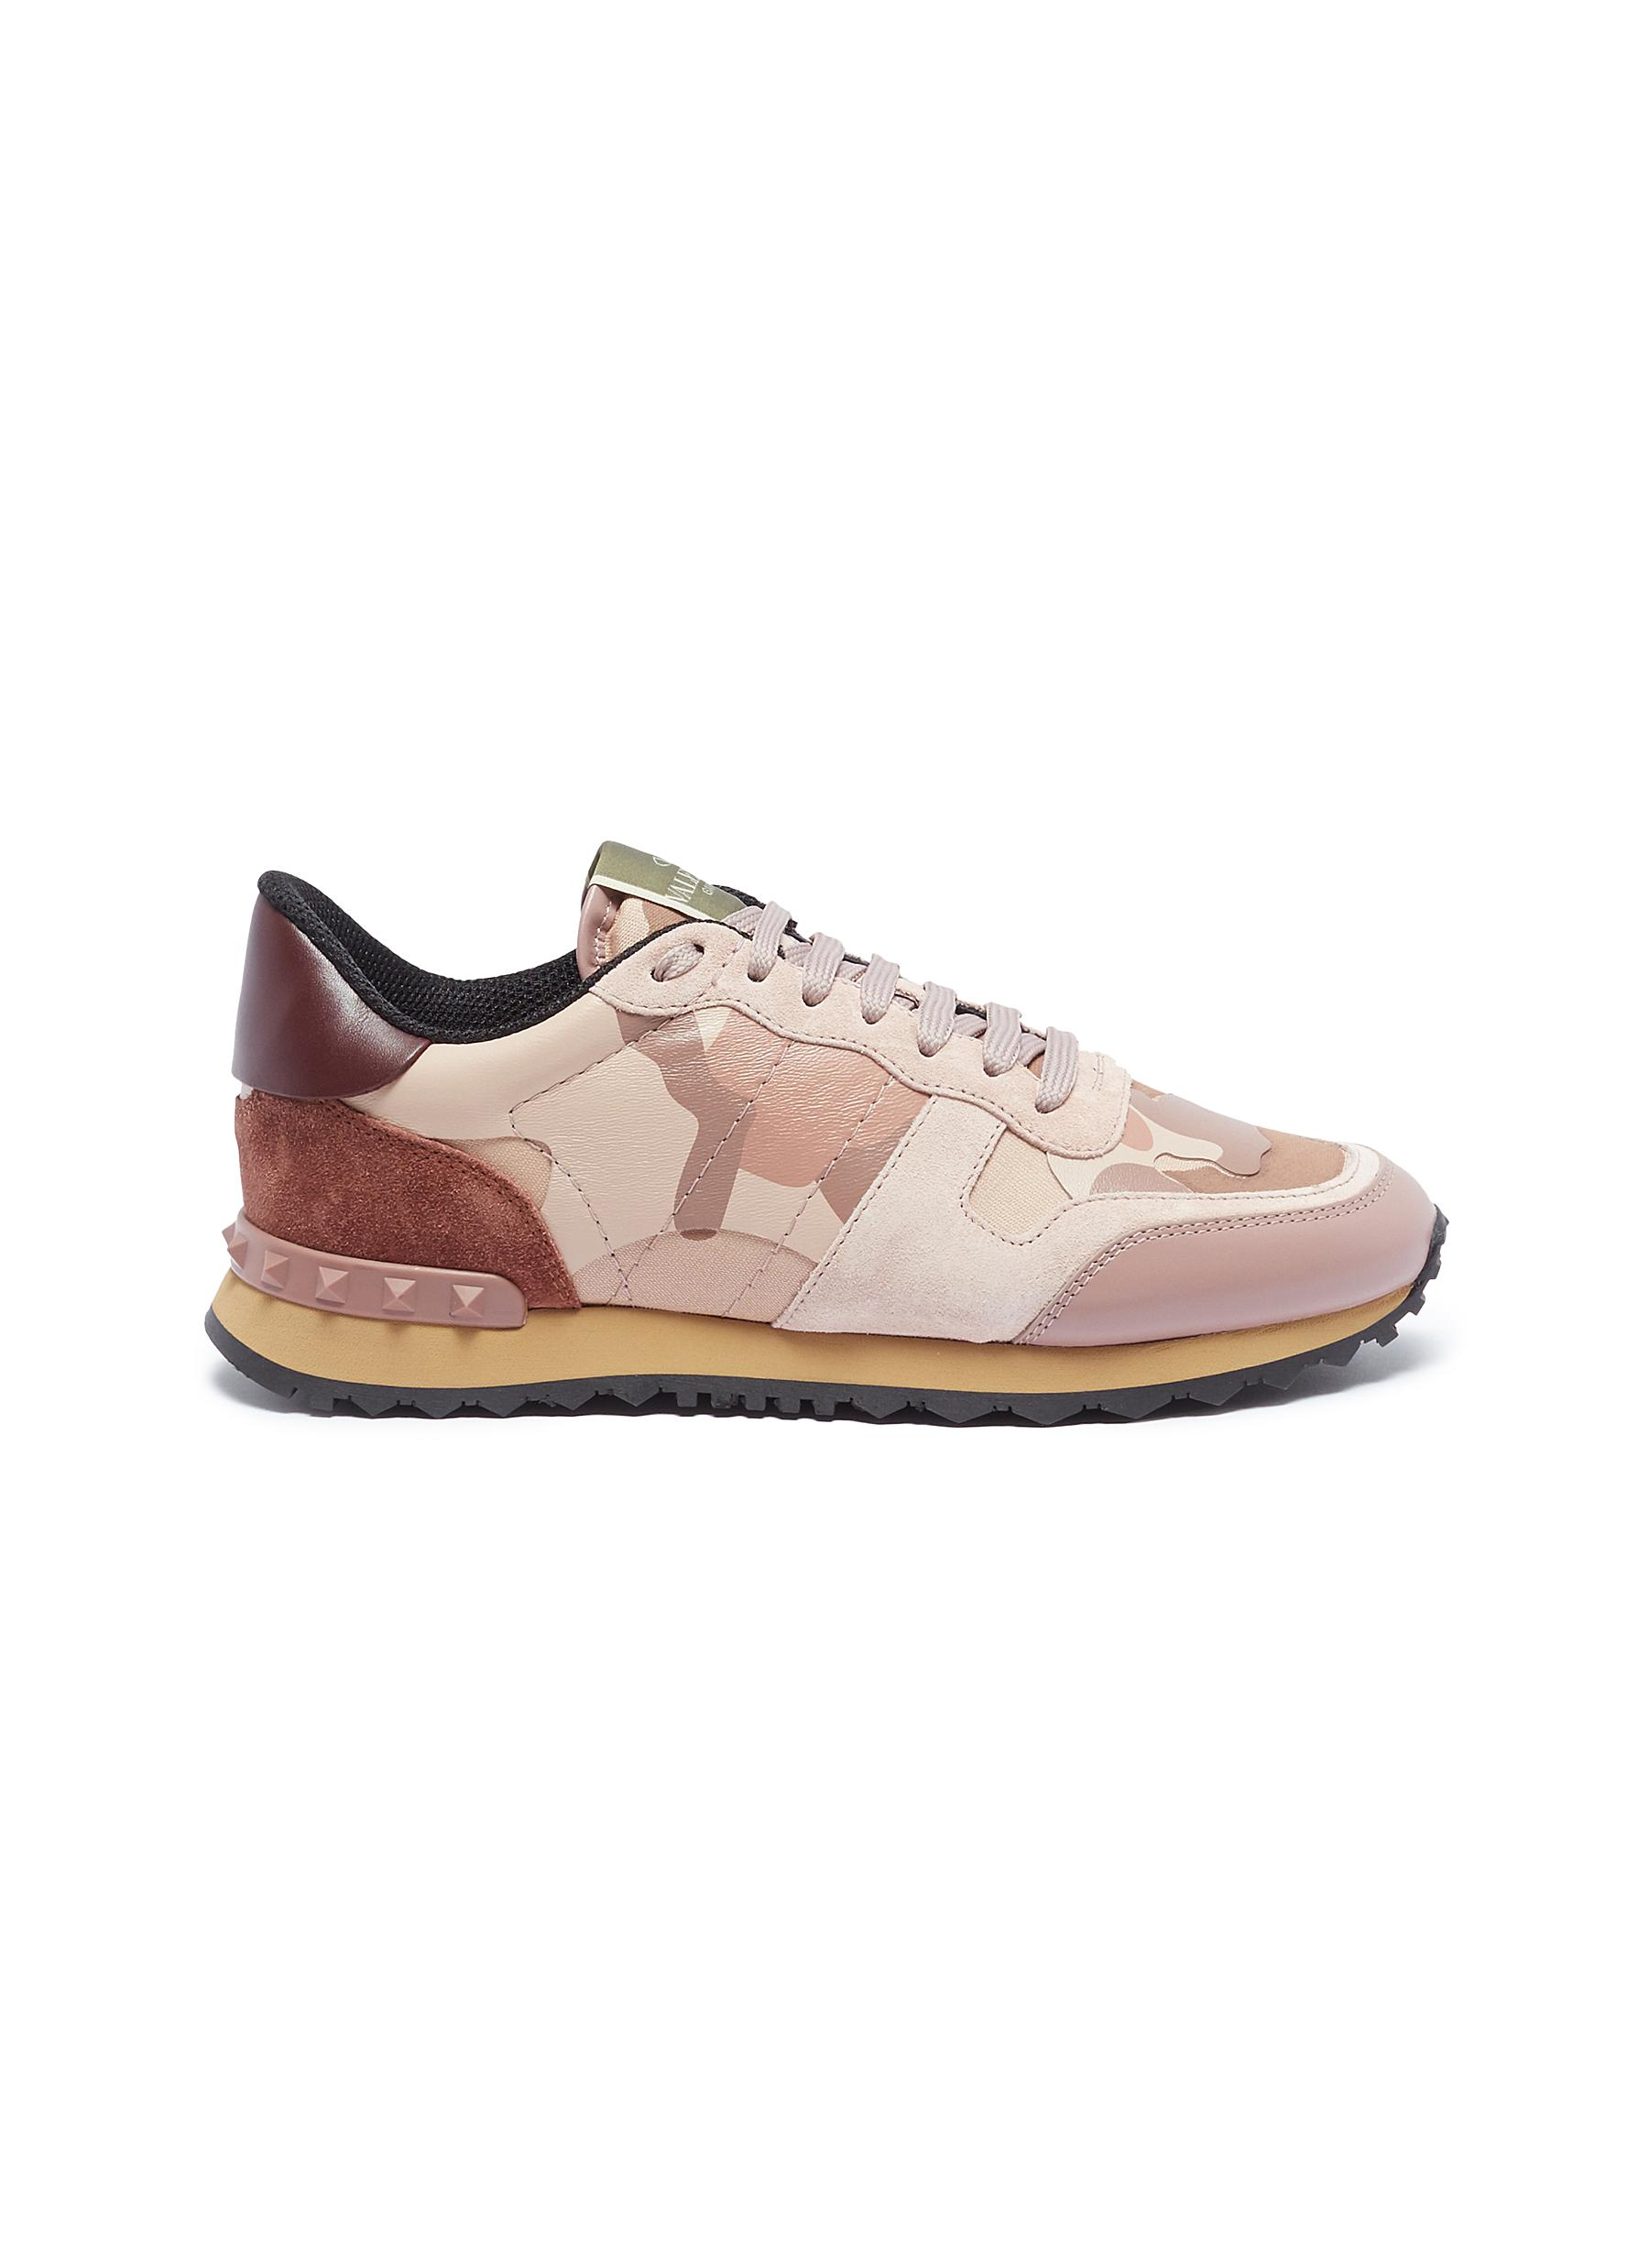 Camouflage Rockrunner patchwork sneakers by Valentino